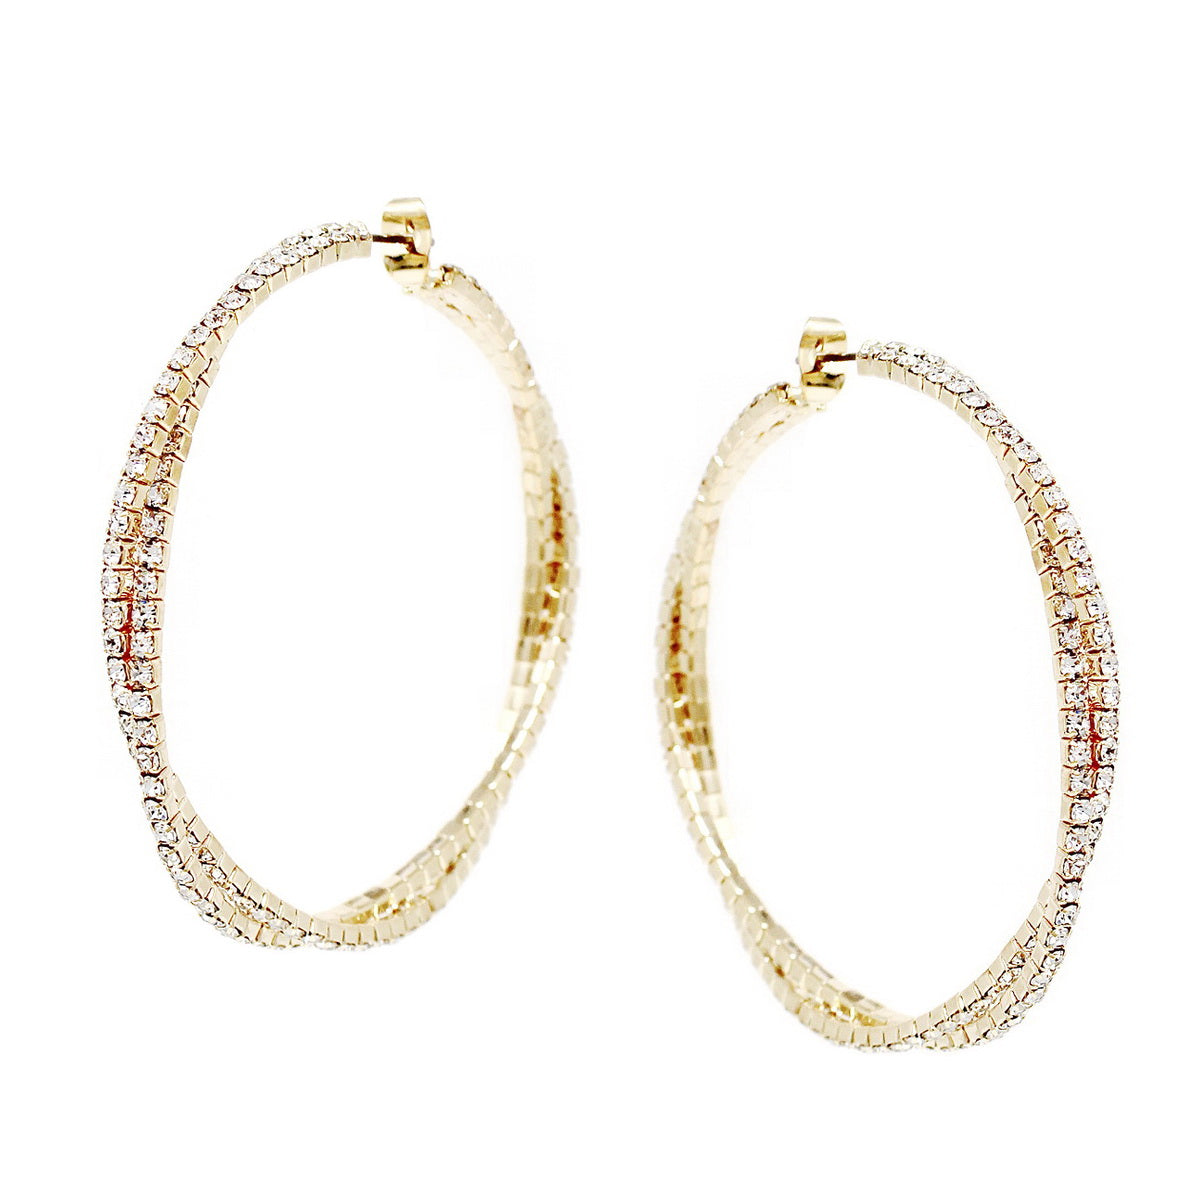 Rhinestone Pave Twisted Hoop Earrings (Medium)